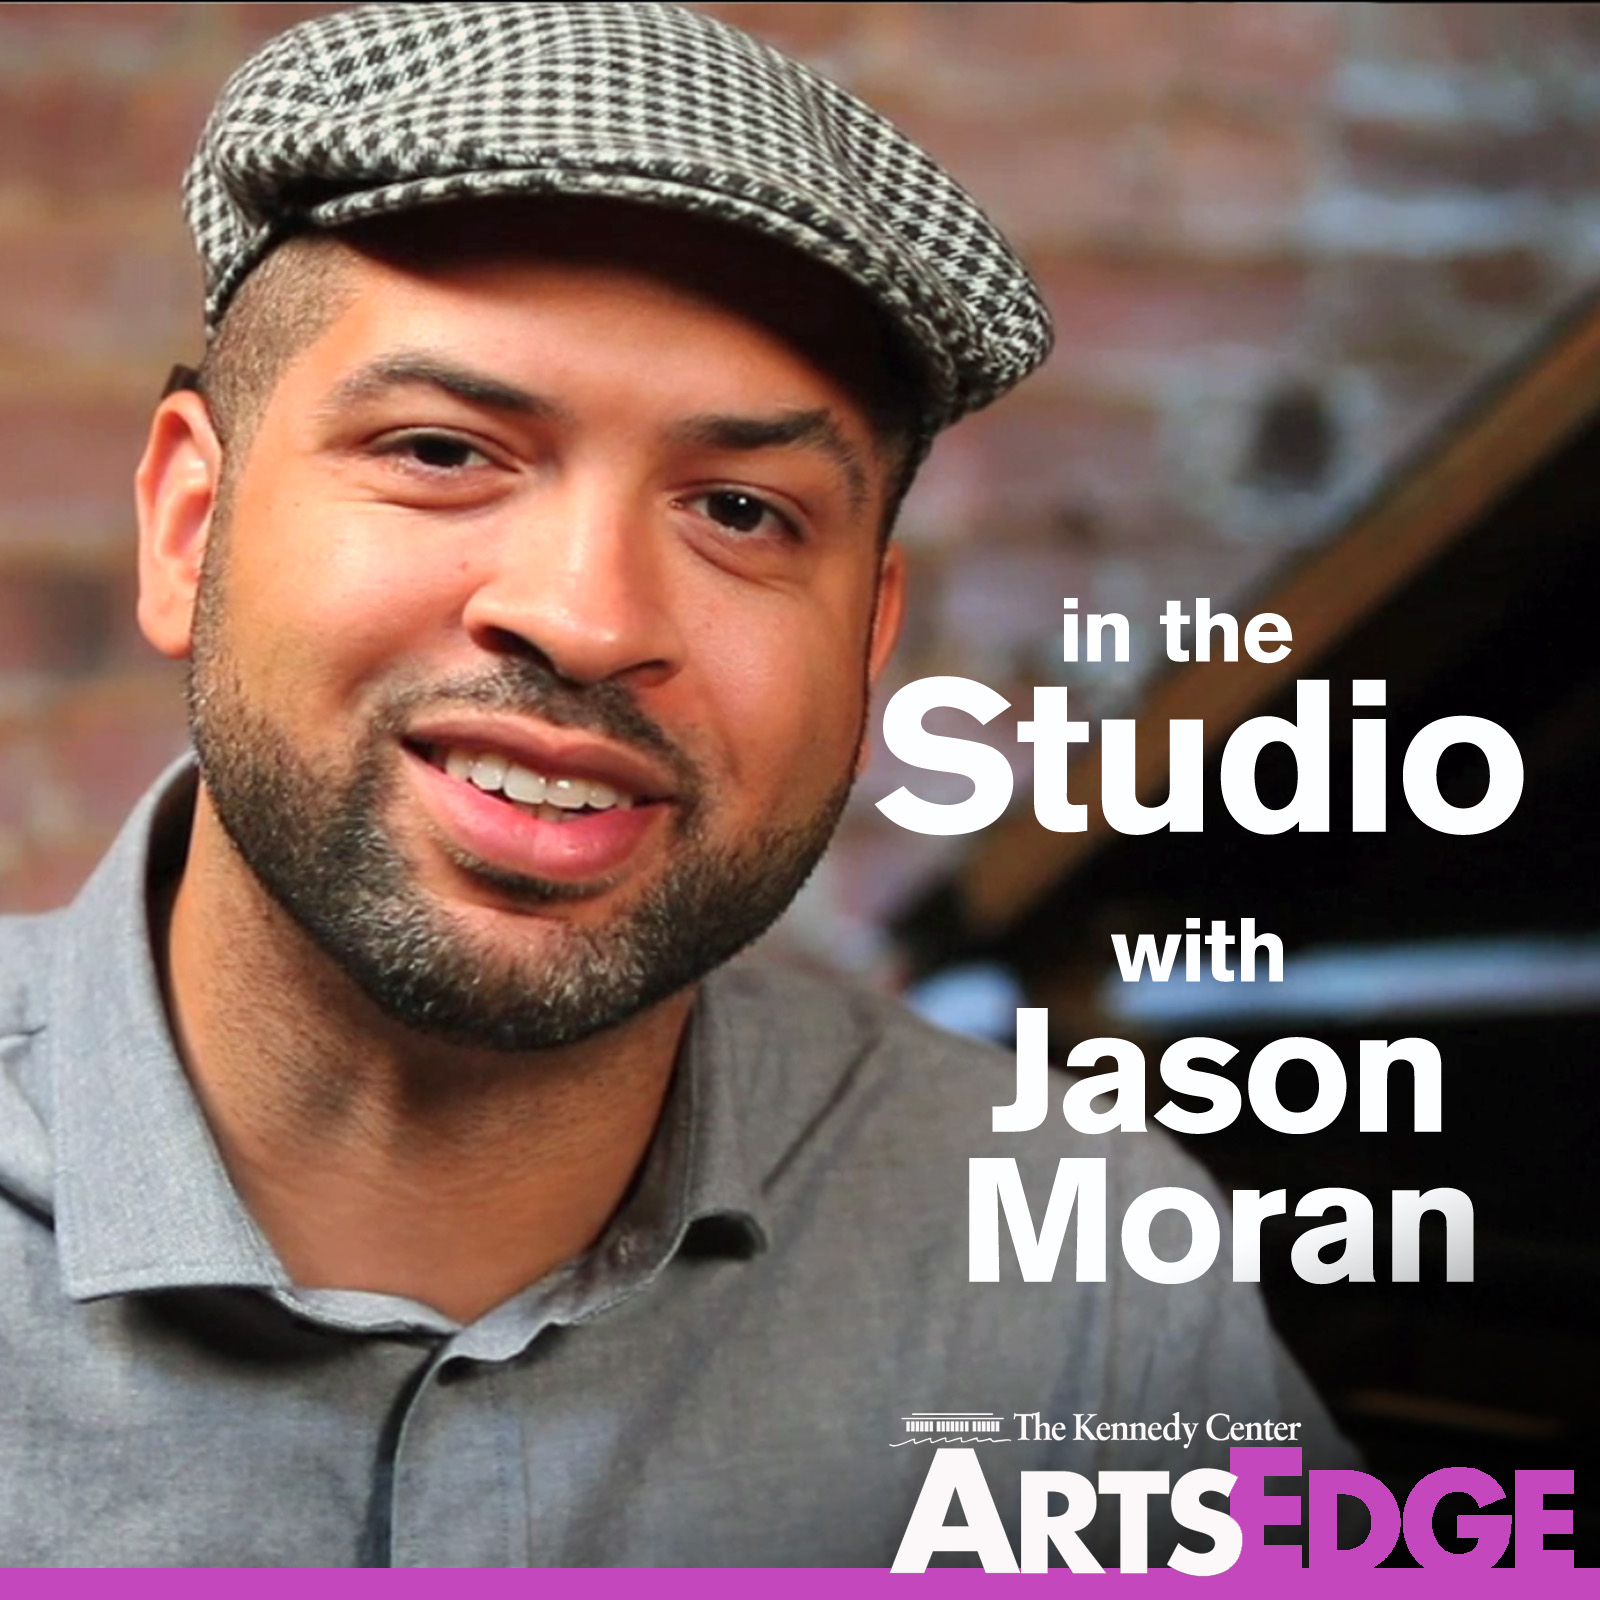 In the Studio with Jason Moran